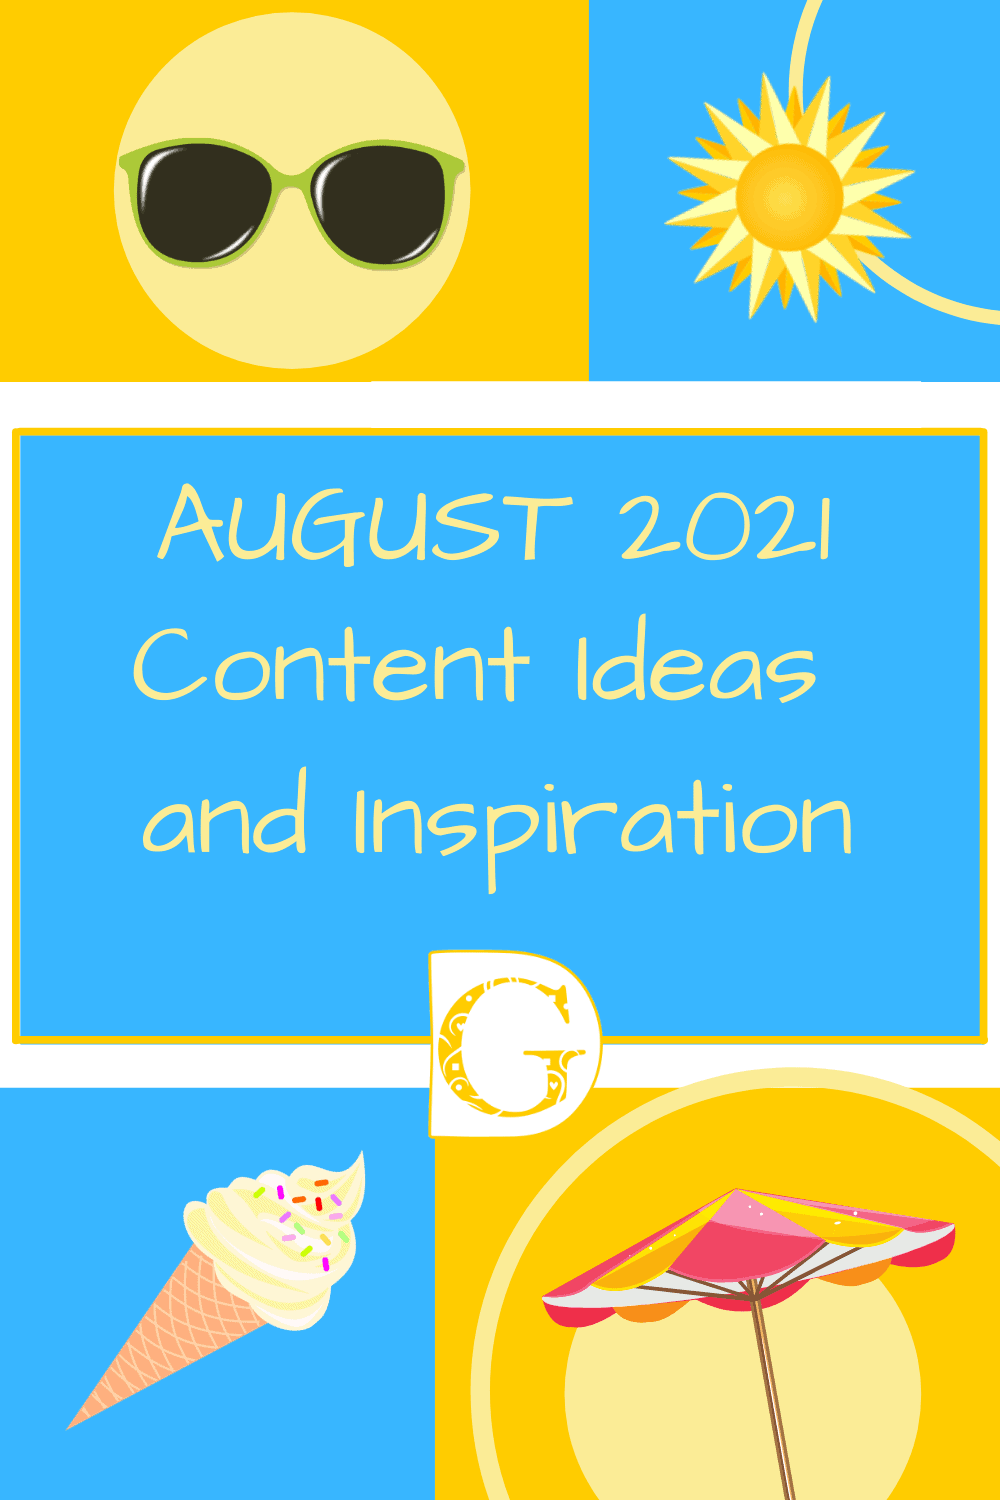 August 2021 Content Ideas and Inspiration